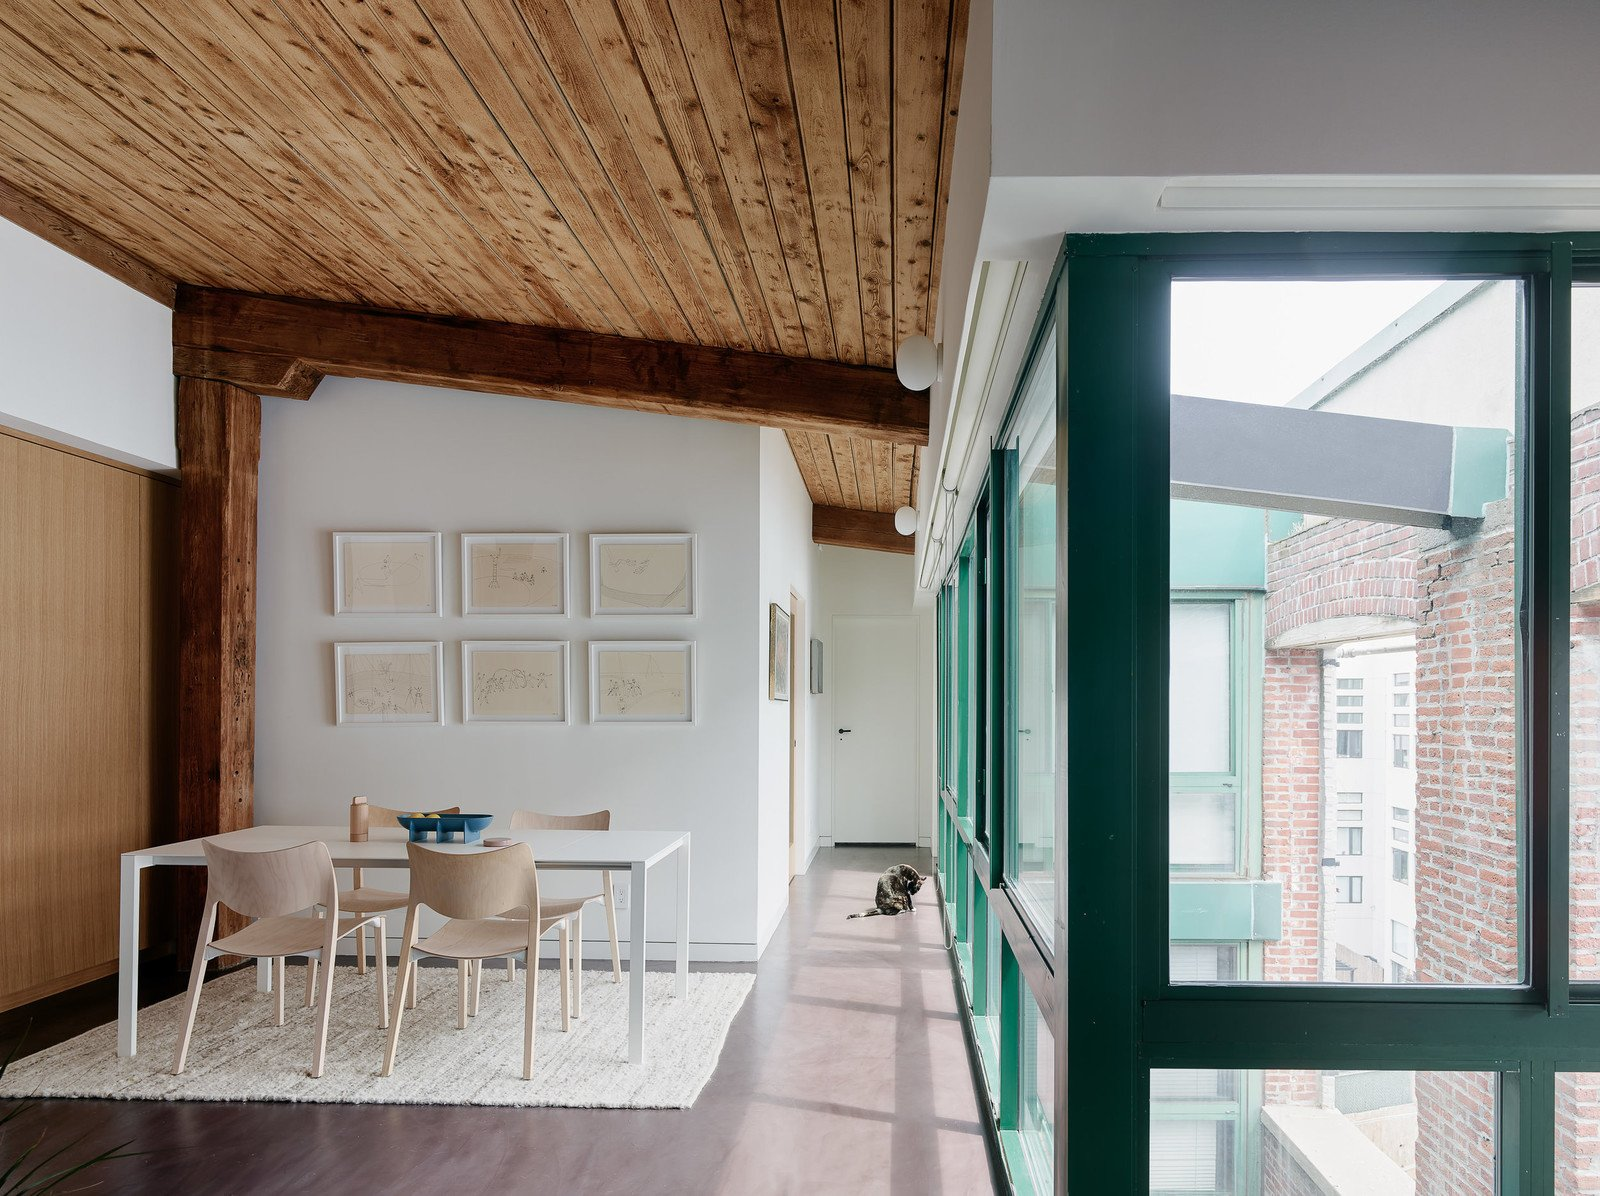 Photo 3 of 6 in Top 5 Homes That Use Wood in Interesting Ways